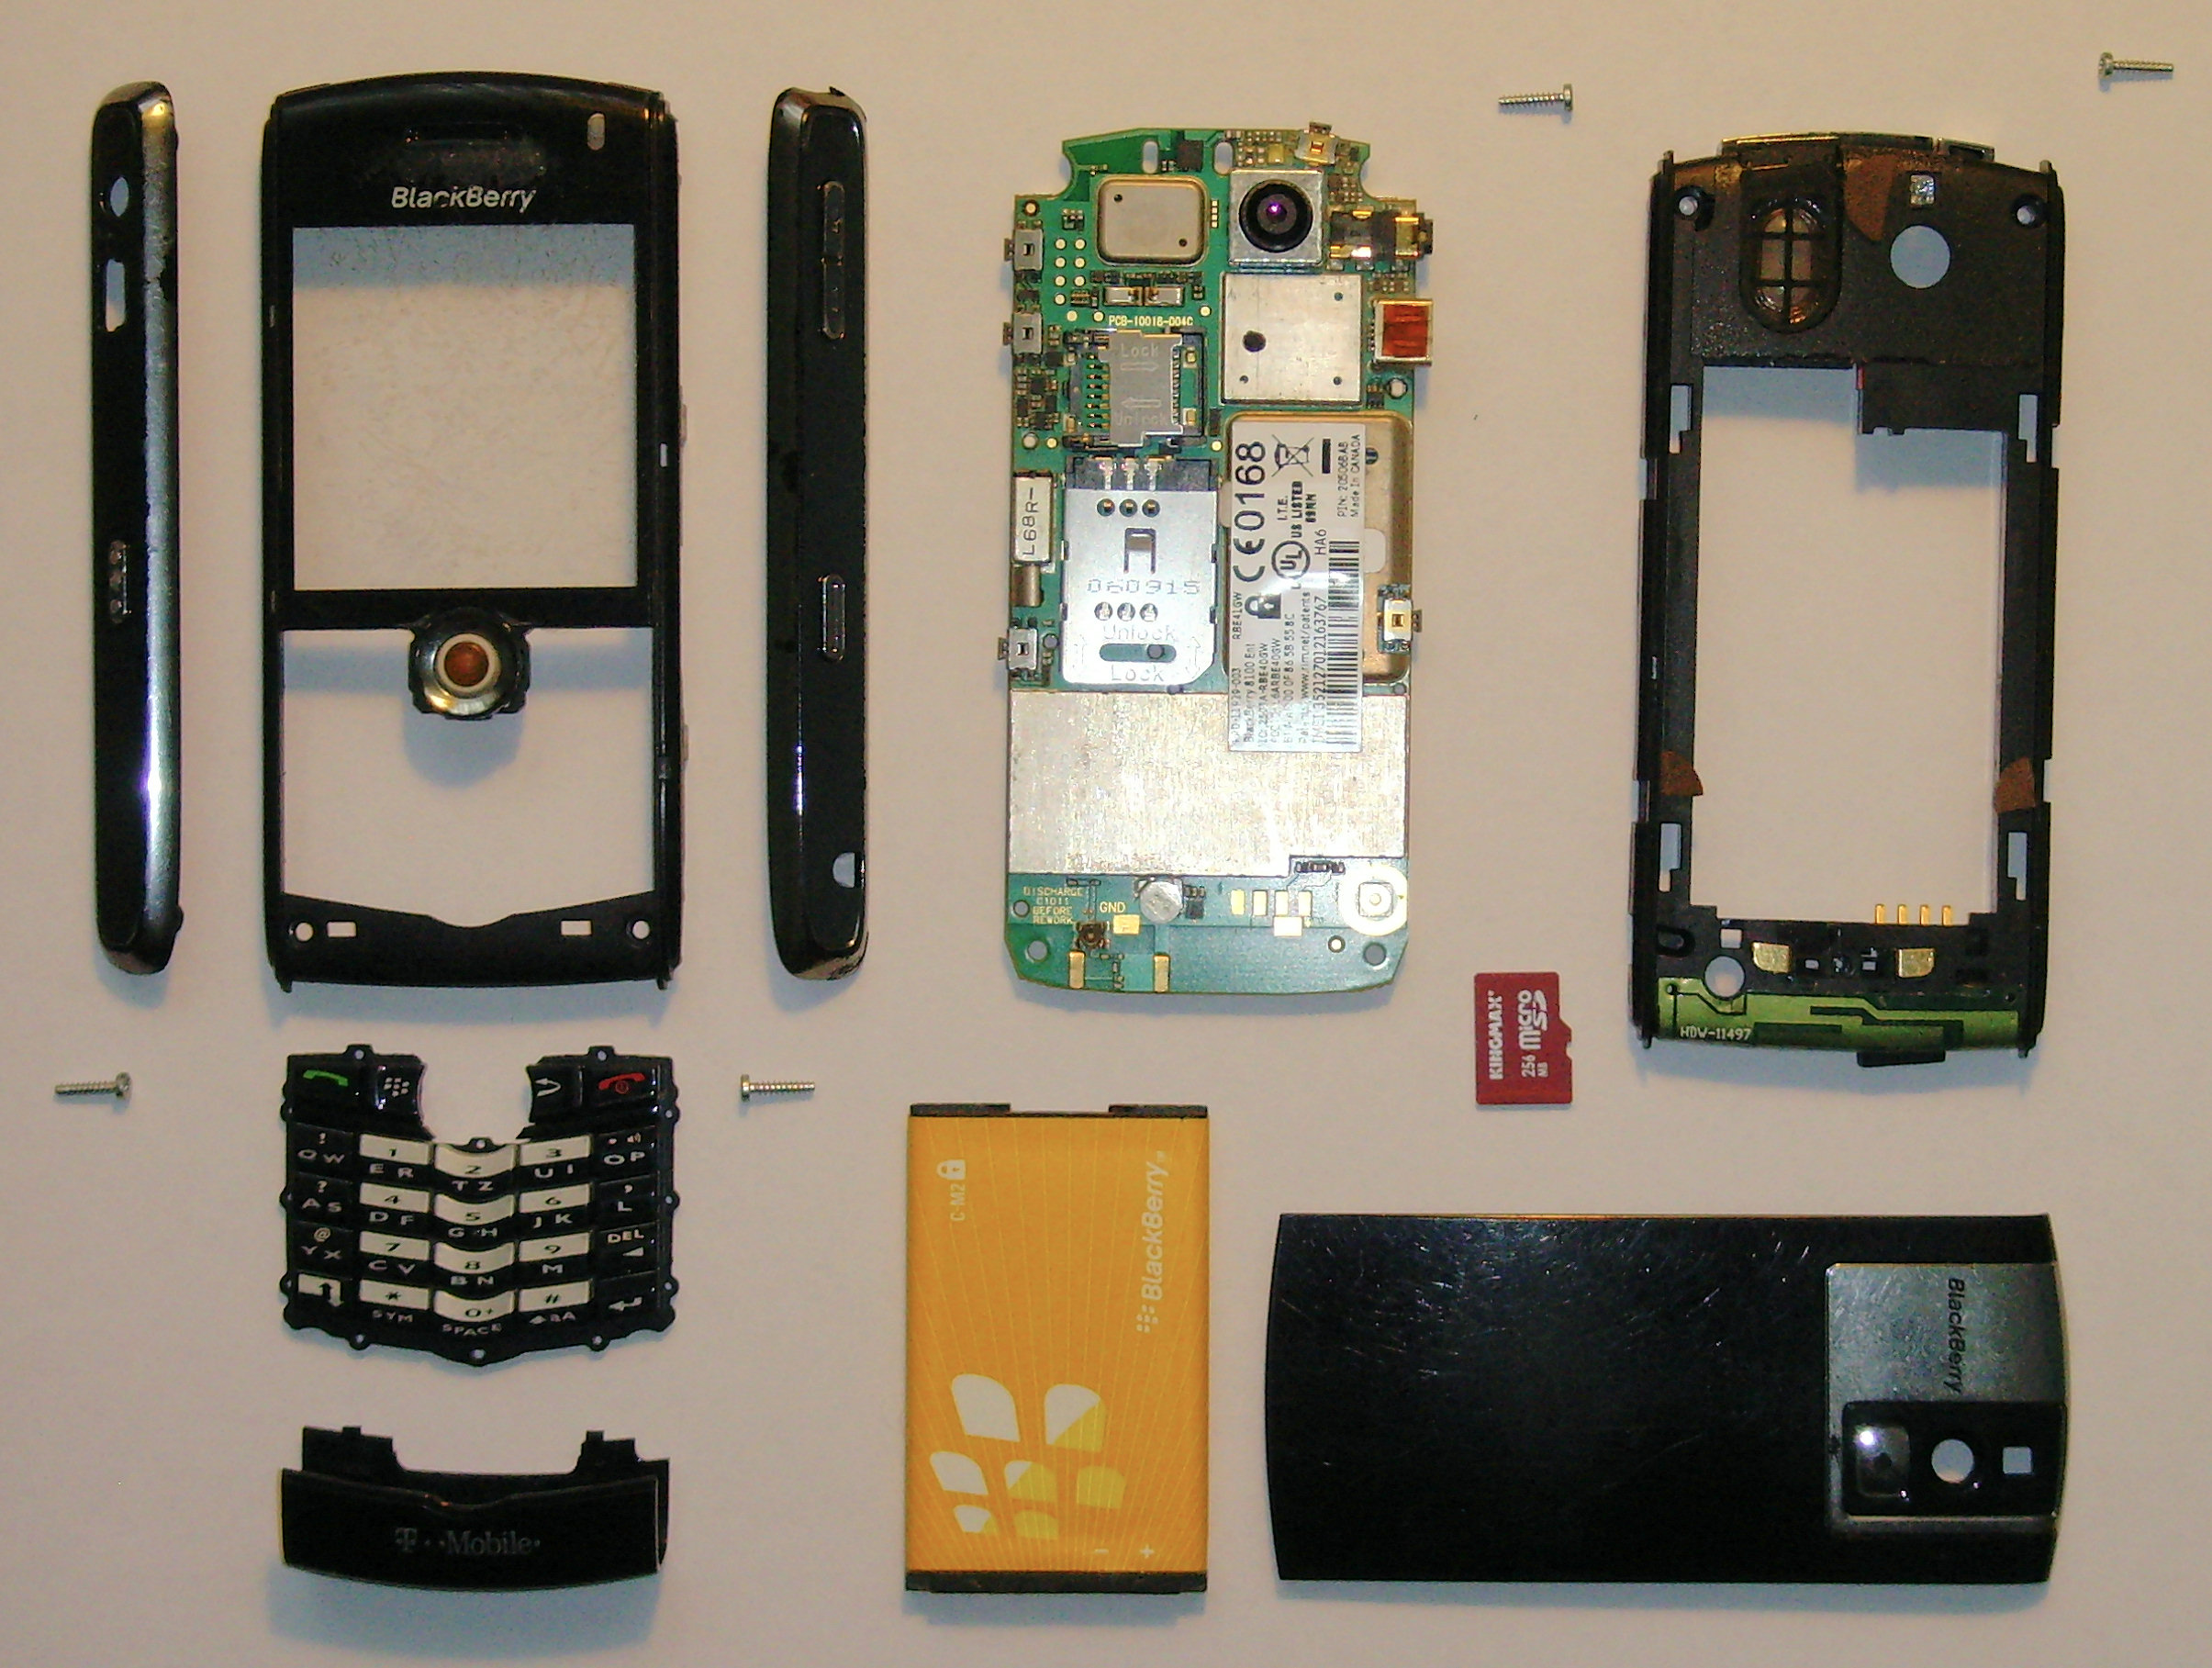 Blackberry pearl 8100 mobile phones images blackberry pearl 8100 - File Blackberry Pearl Disassembled Jpg